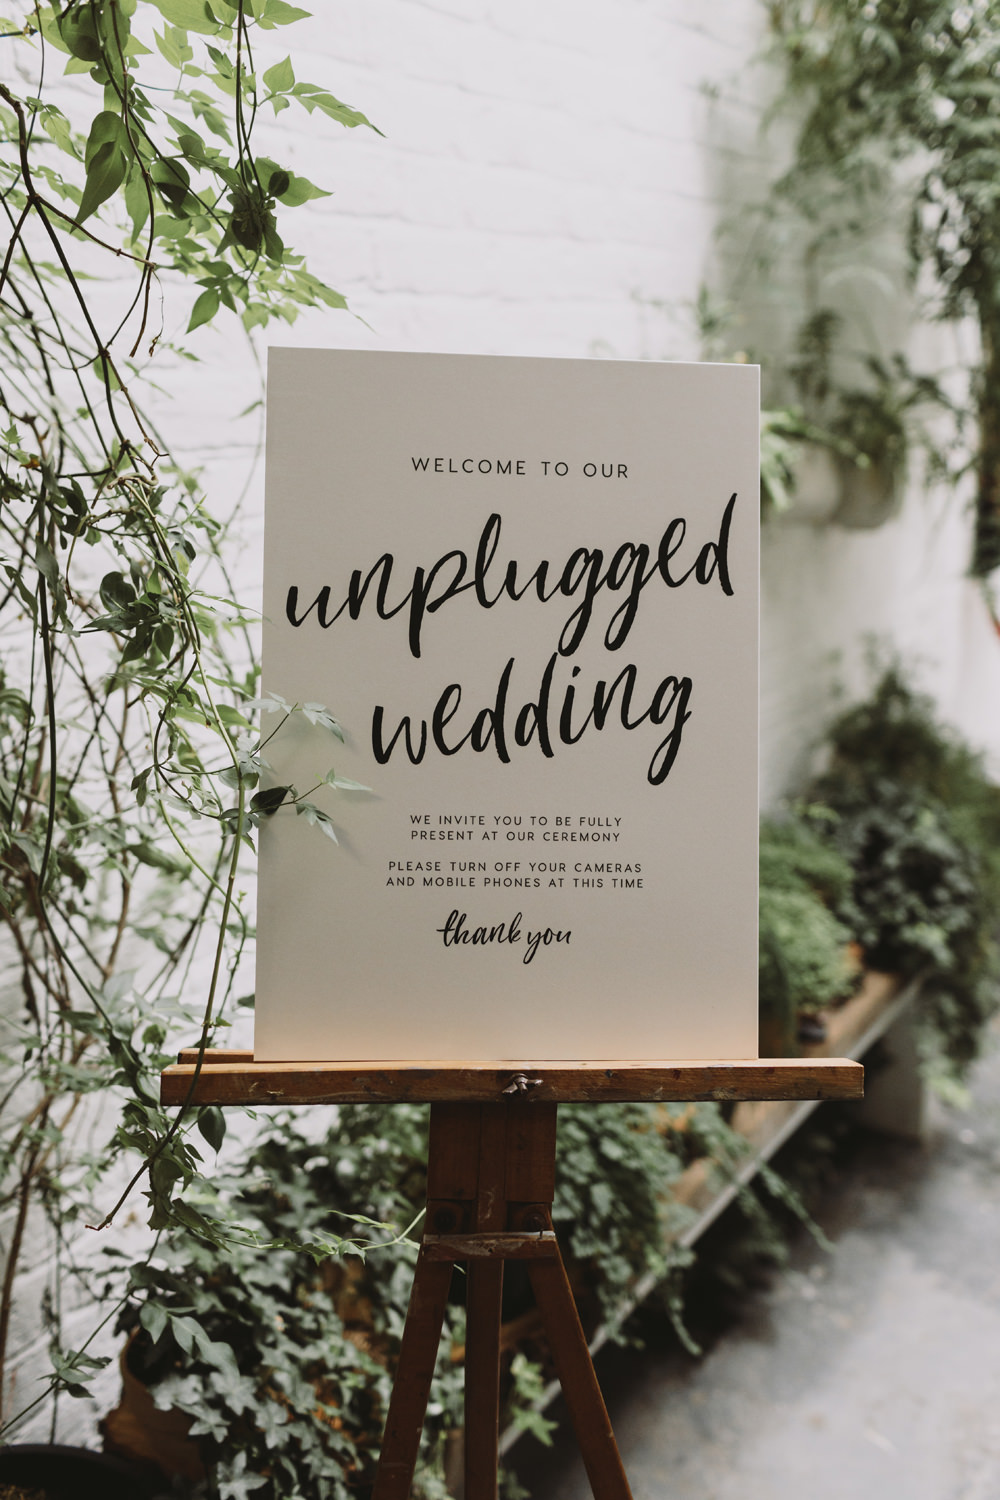 Unplugged Wedding Sign Modern Calligraphy Wooden Easel Greenery Foliage Tram House Wedding Luke Hayden Photography